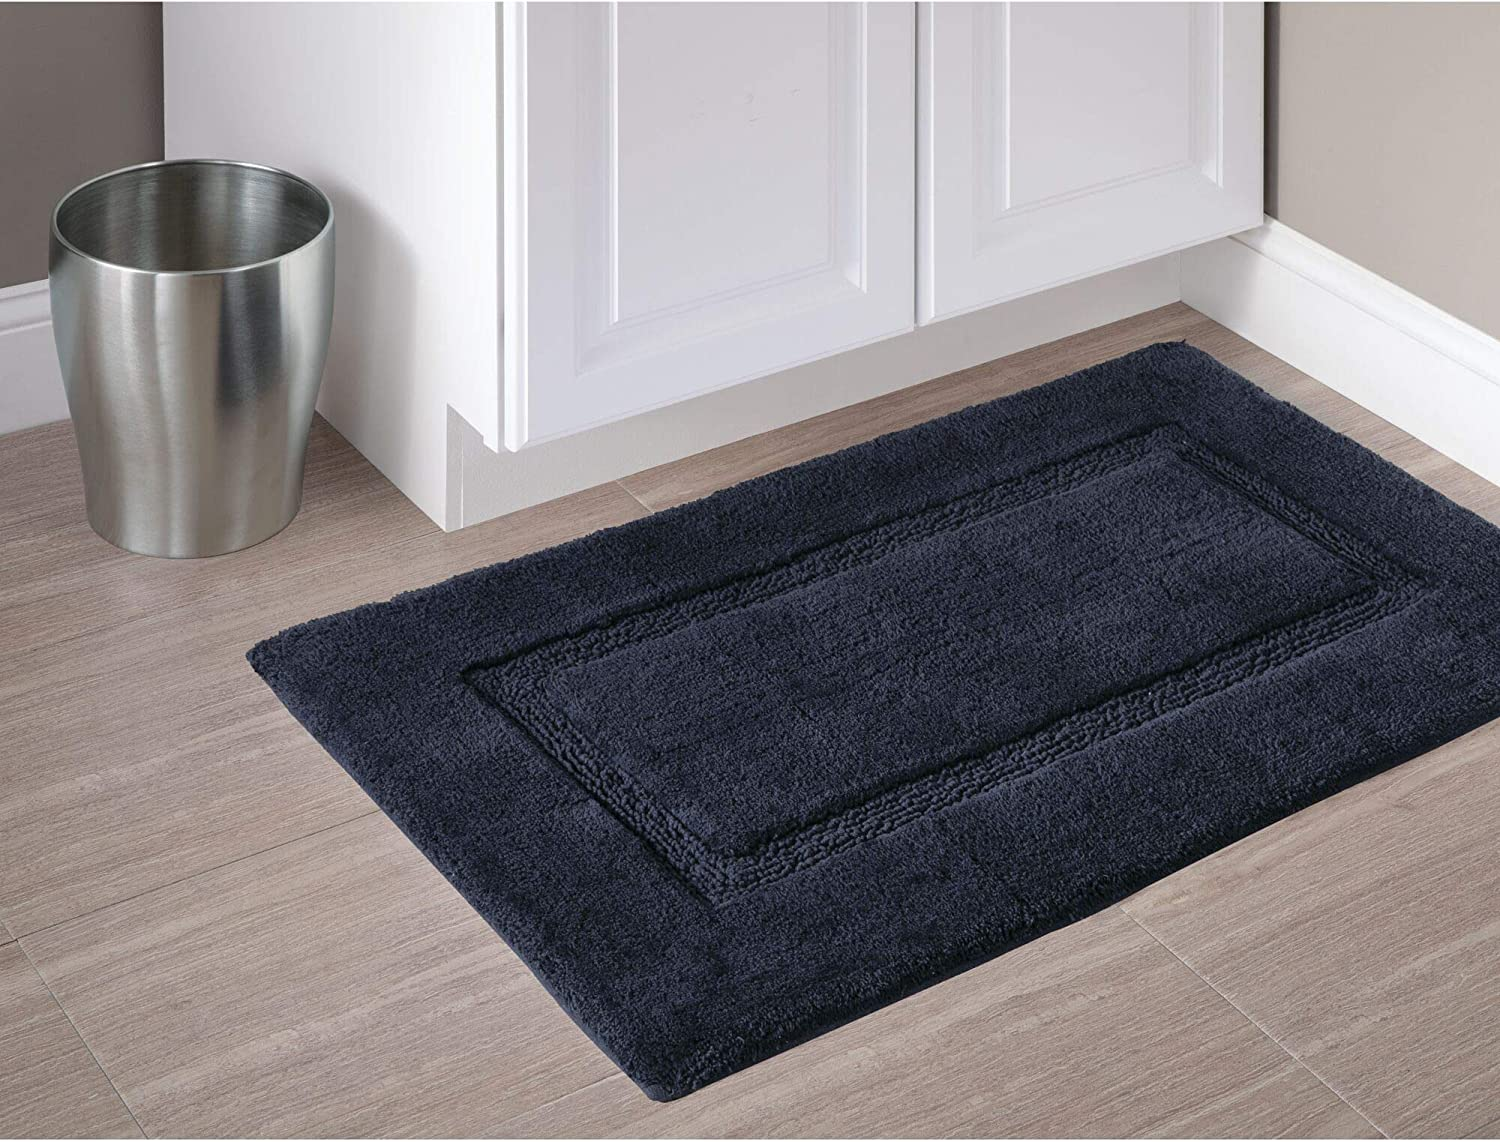 21 x 34 and Kids Bathroom Guest iDesign  Spa Plush Cotton Bath Mat Shower Accent Rug for Master Gray